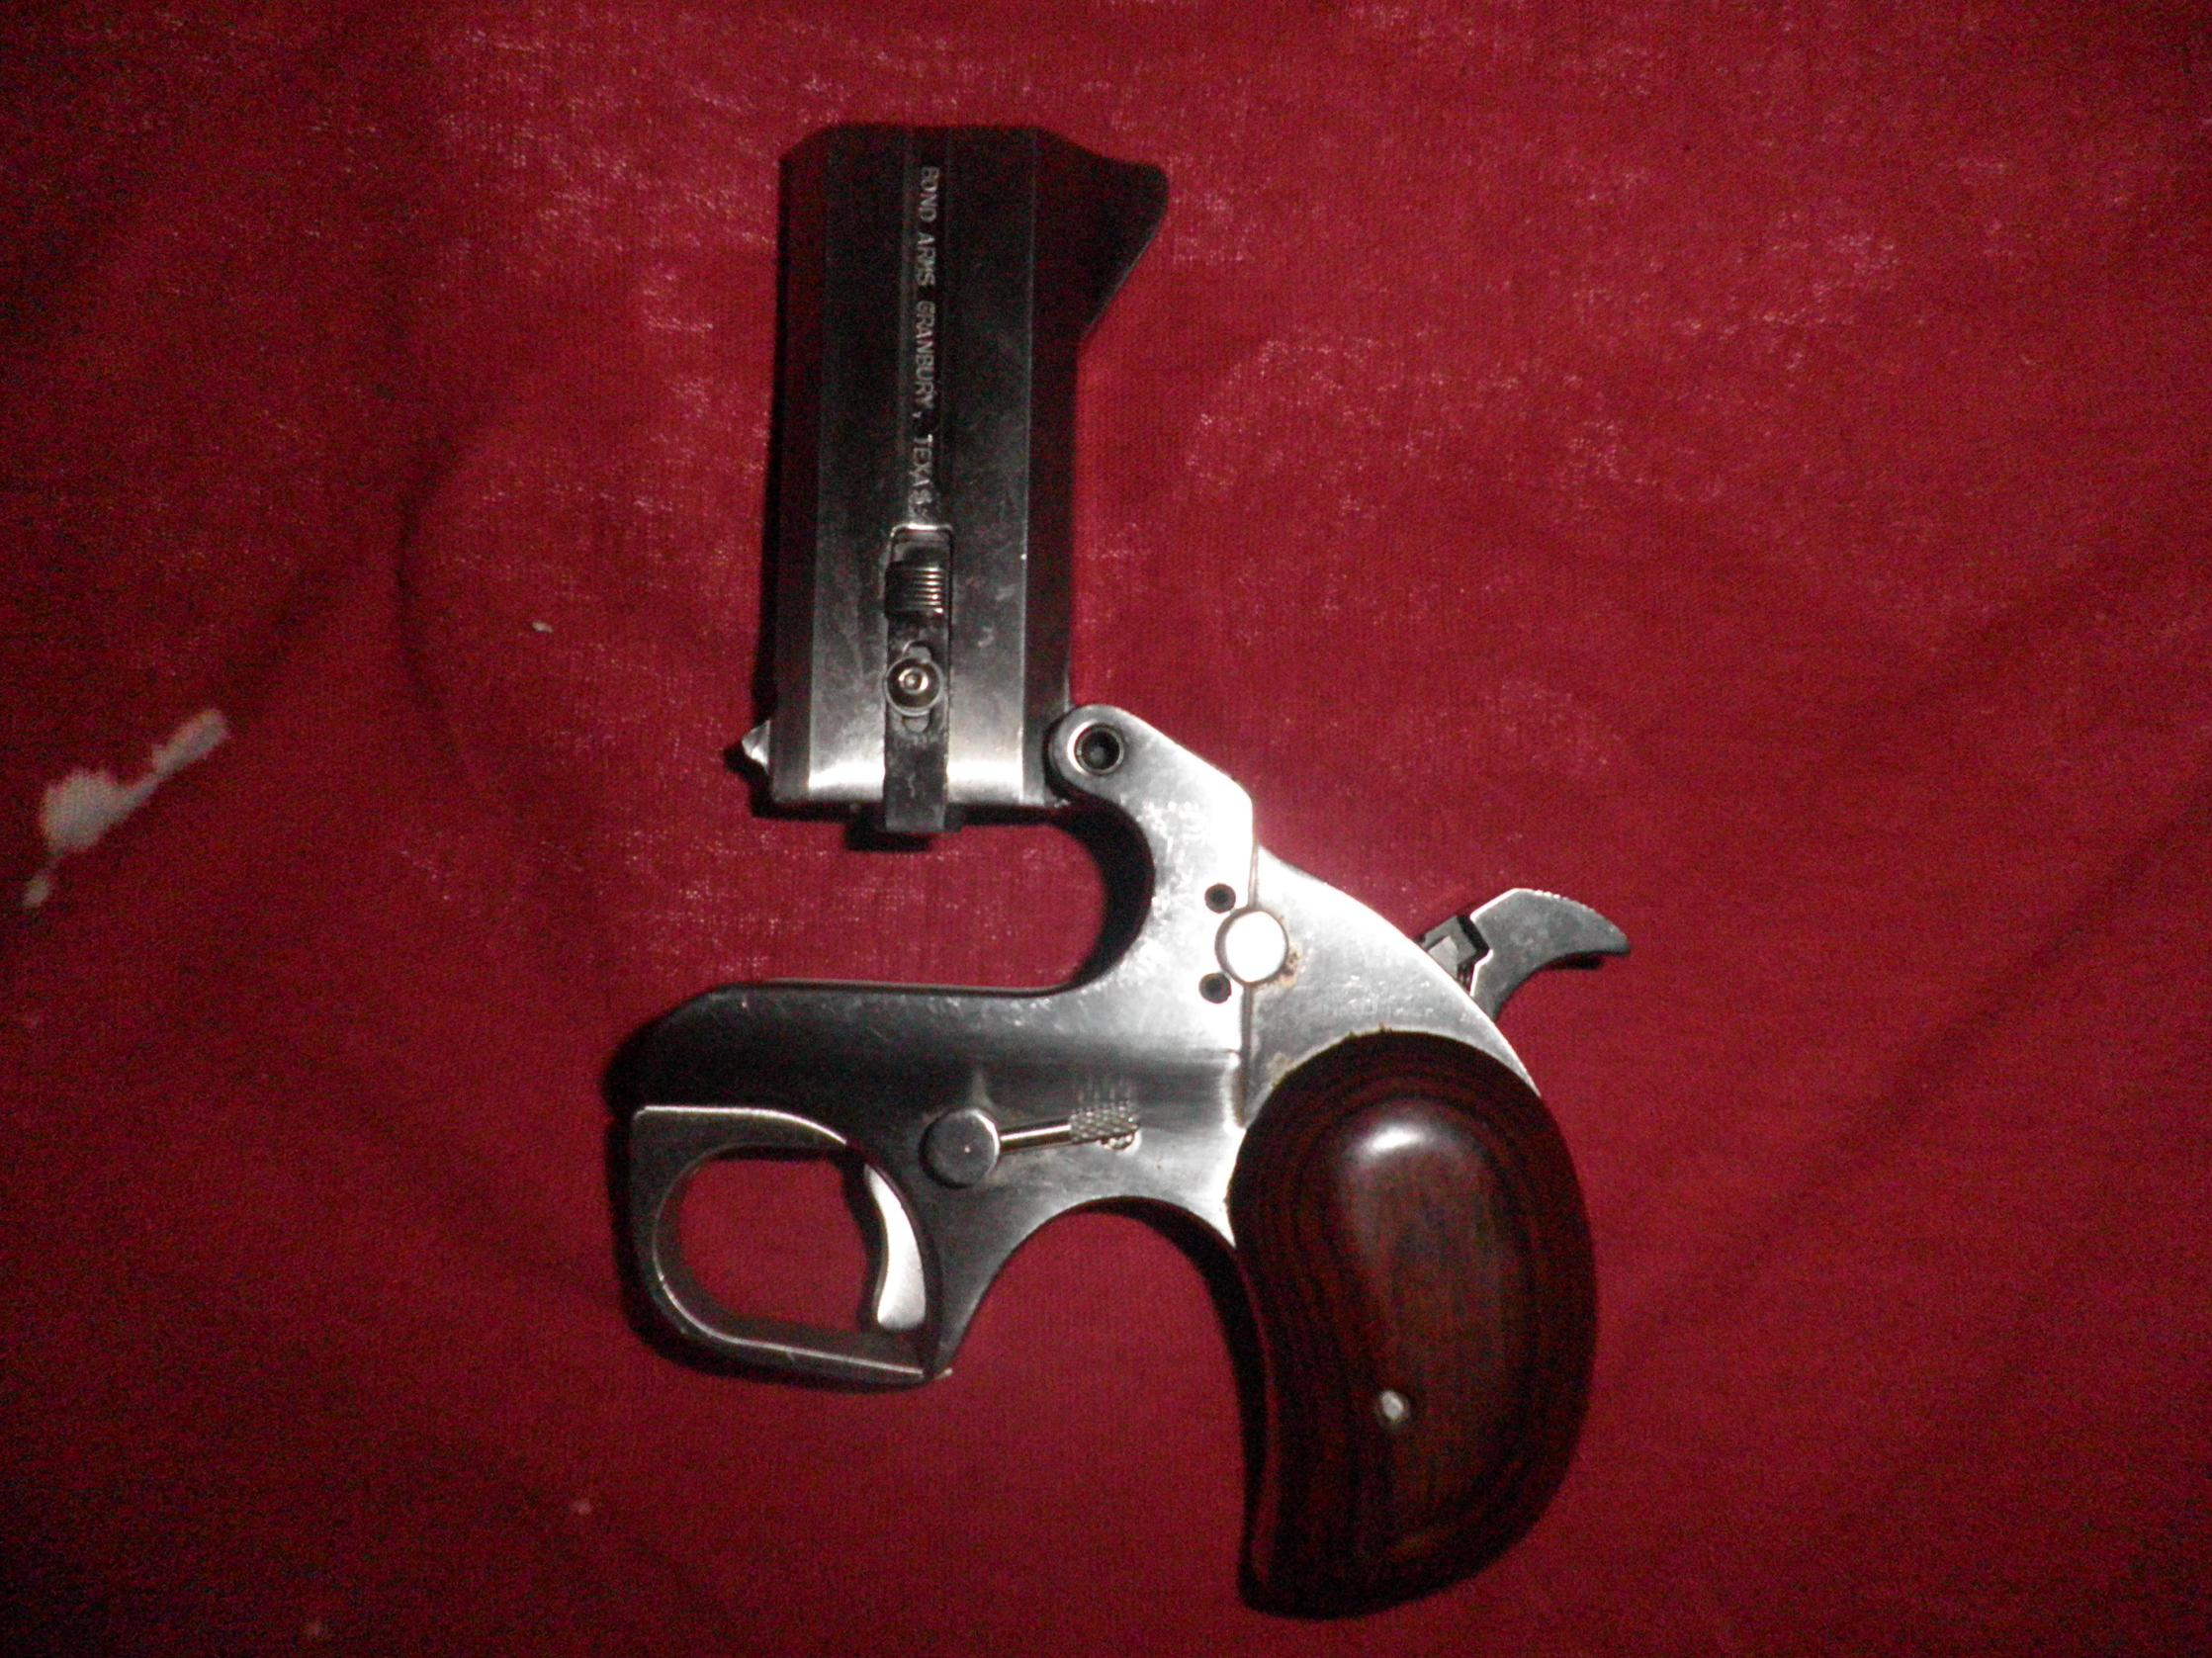 Bond Arms Derringer - Technical Question to owners